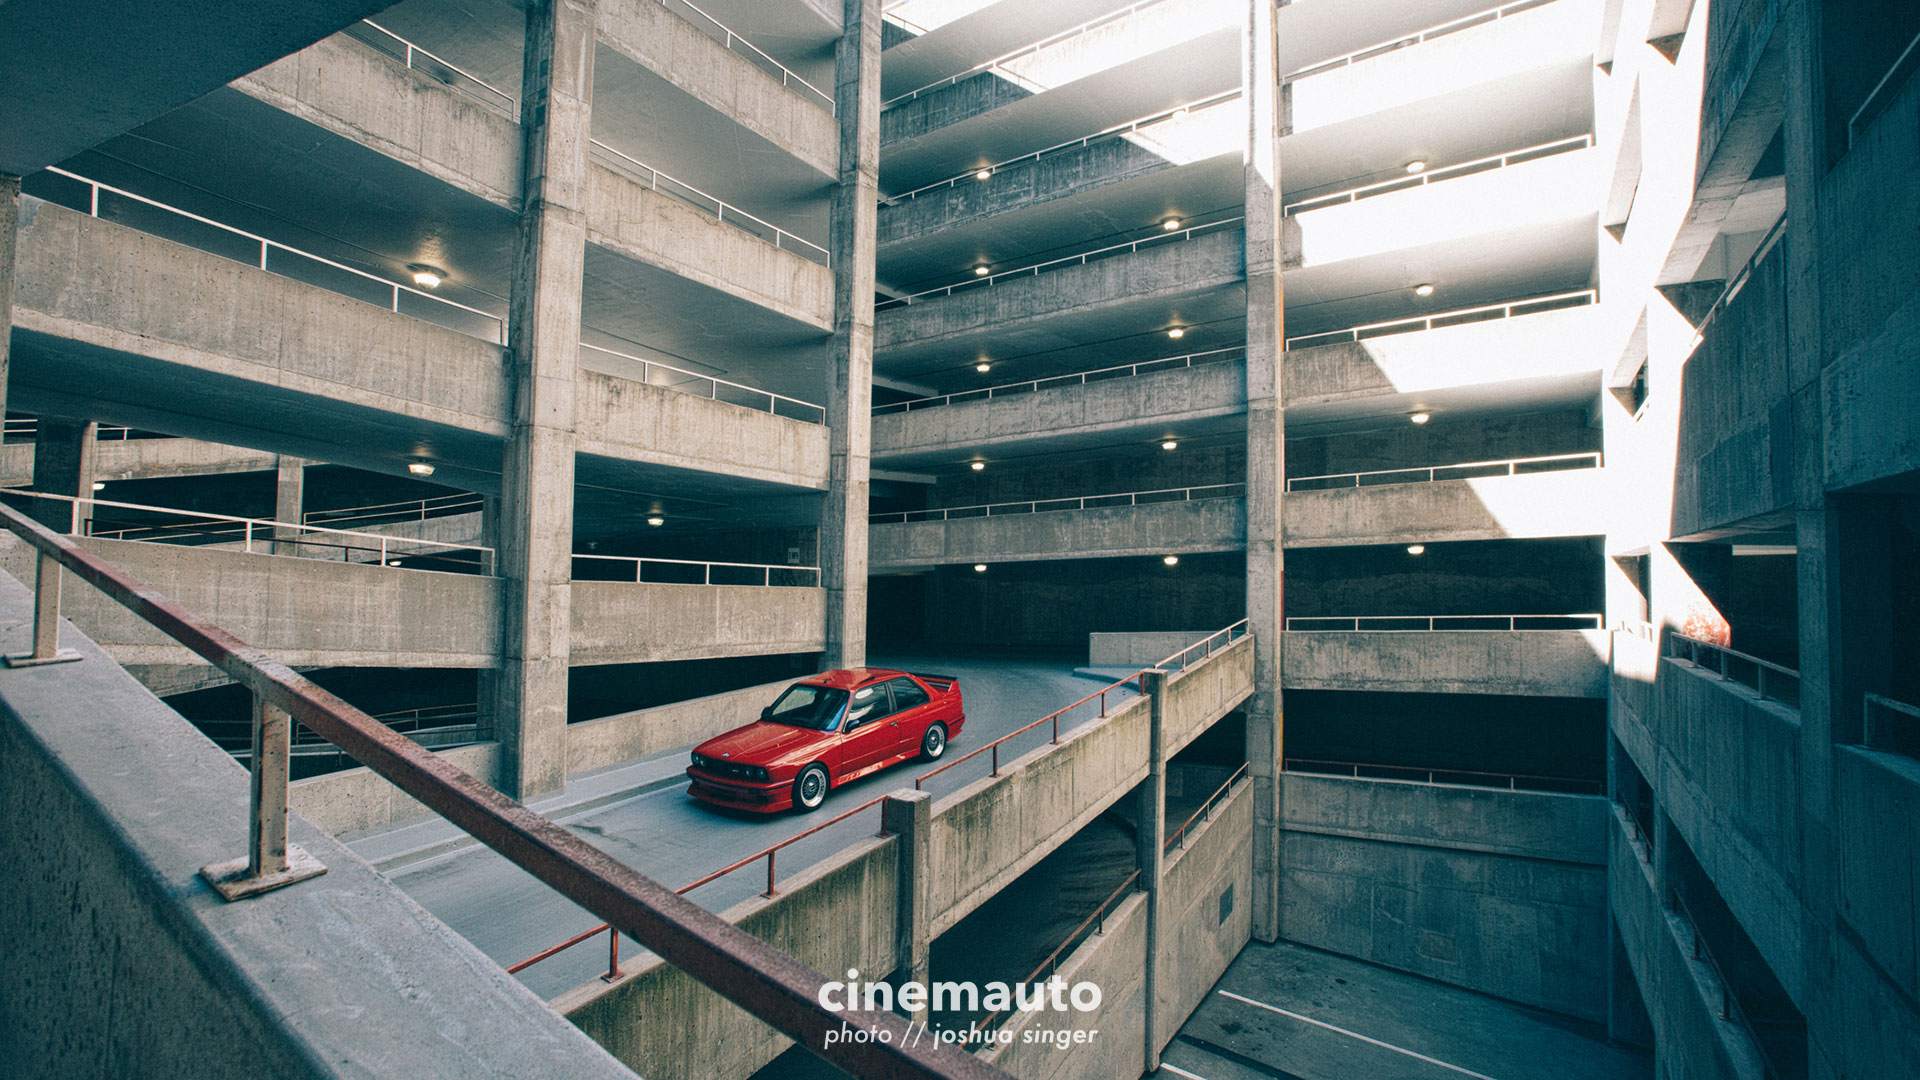 cinemauto-wichita-automotive-videography-midwest-car-cinematography-kk2.jpg